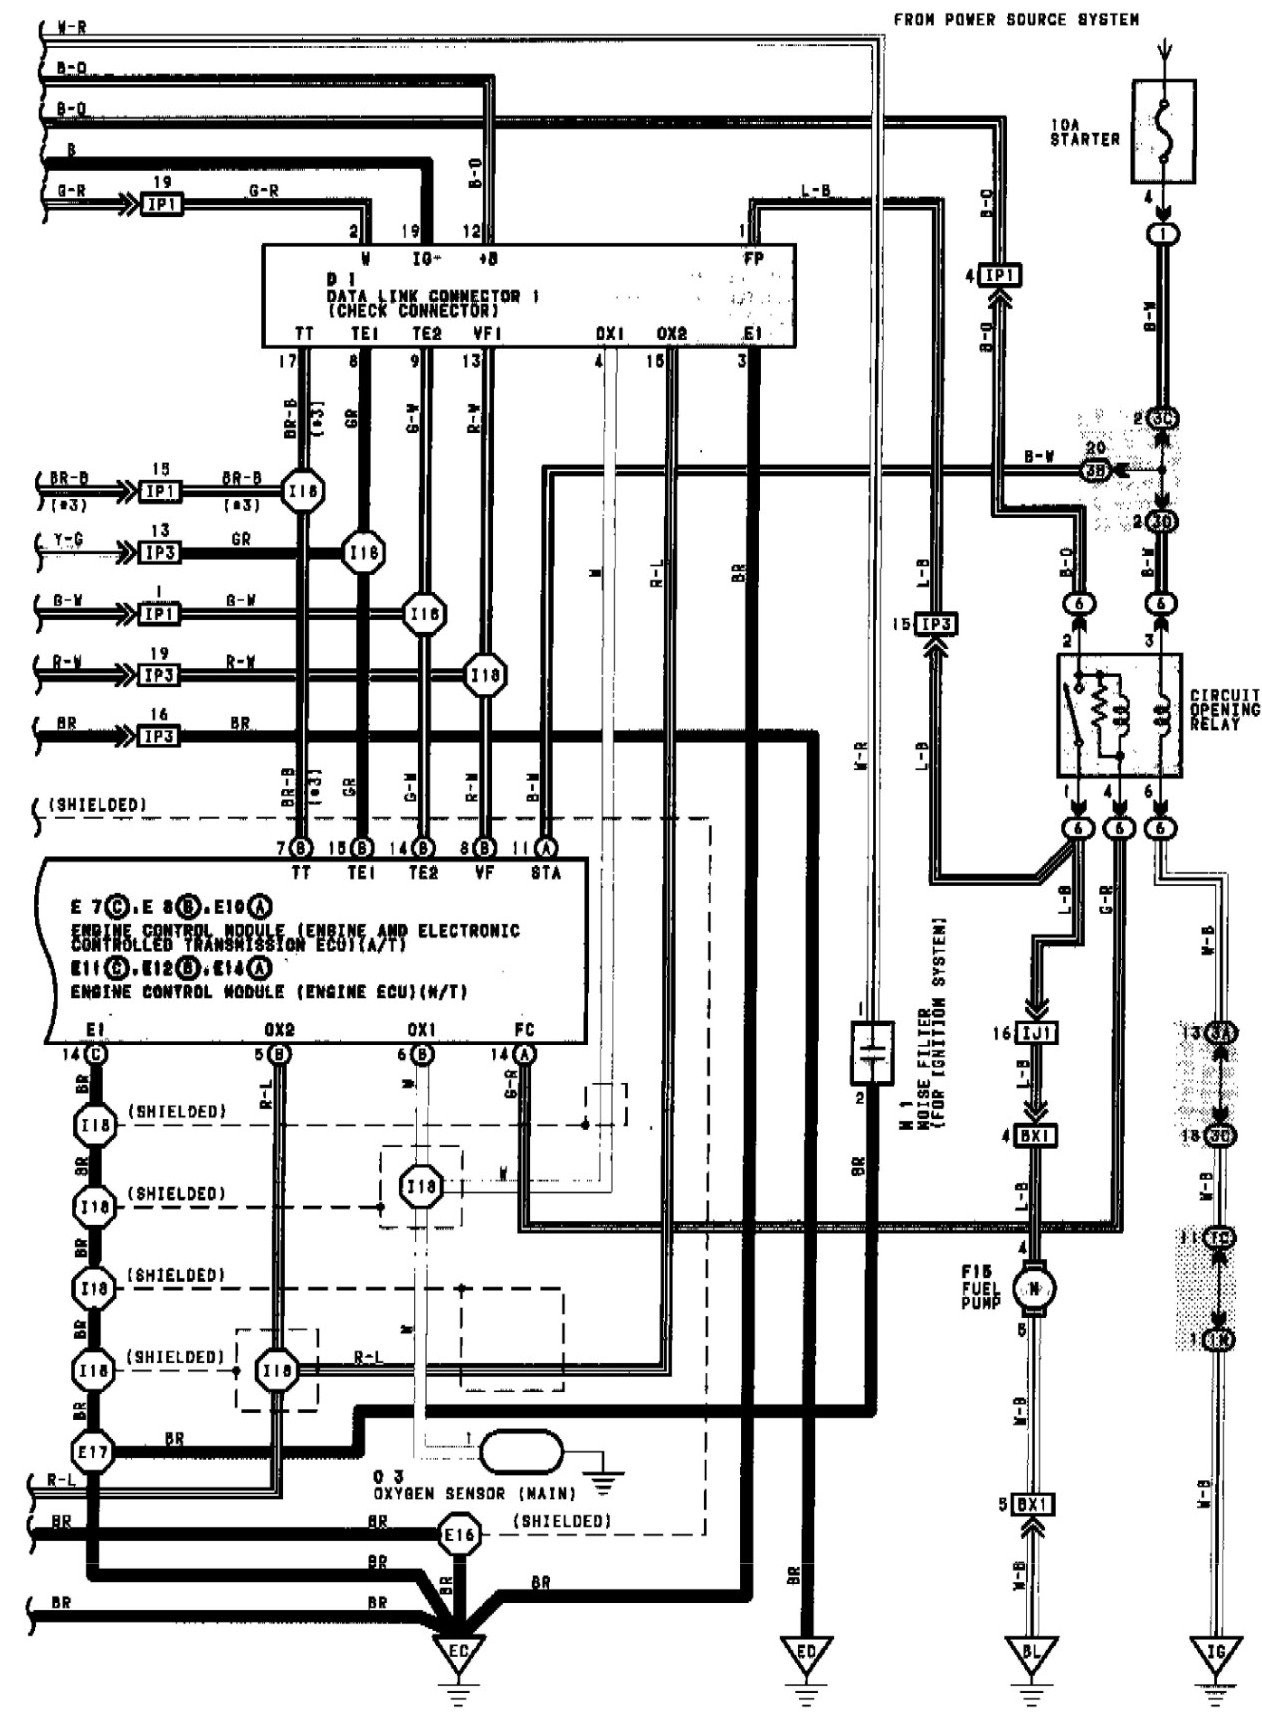 Wiring Diagram 1996 Toyota Camry Le Precision Fuel Pump